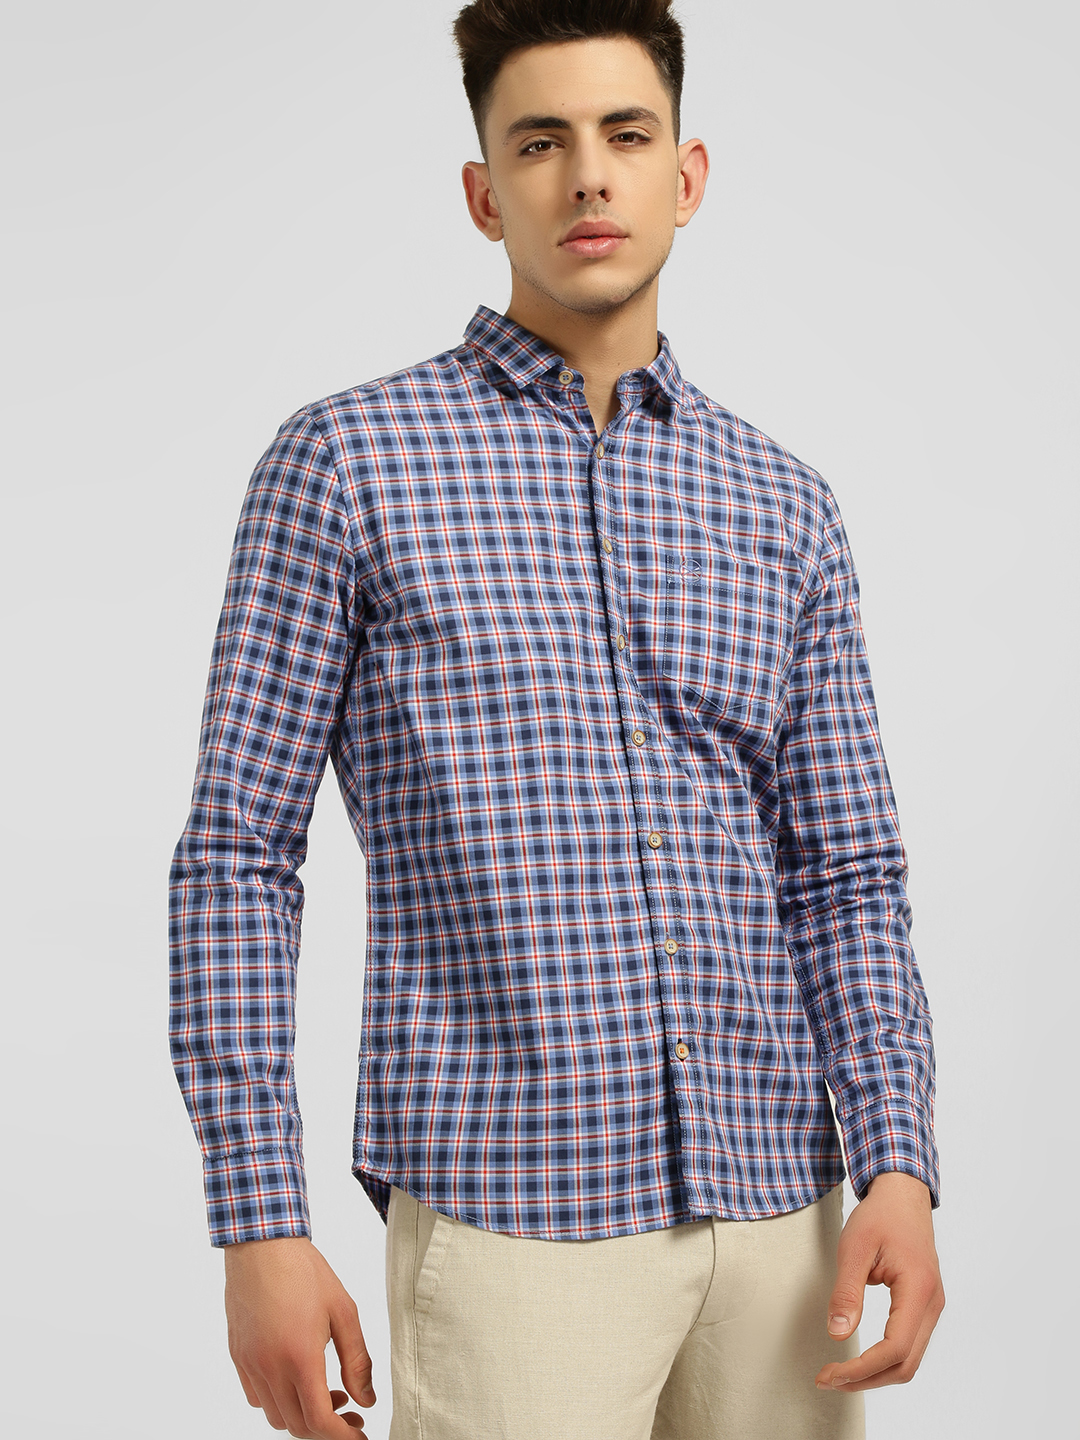 SCULLERS Blue Madras Check Casual Shirt 1